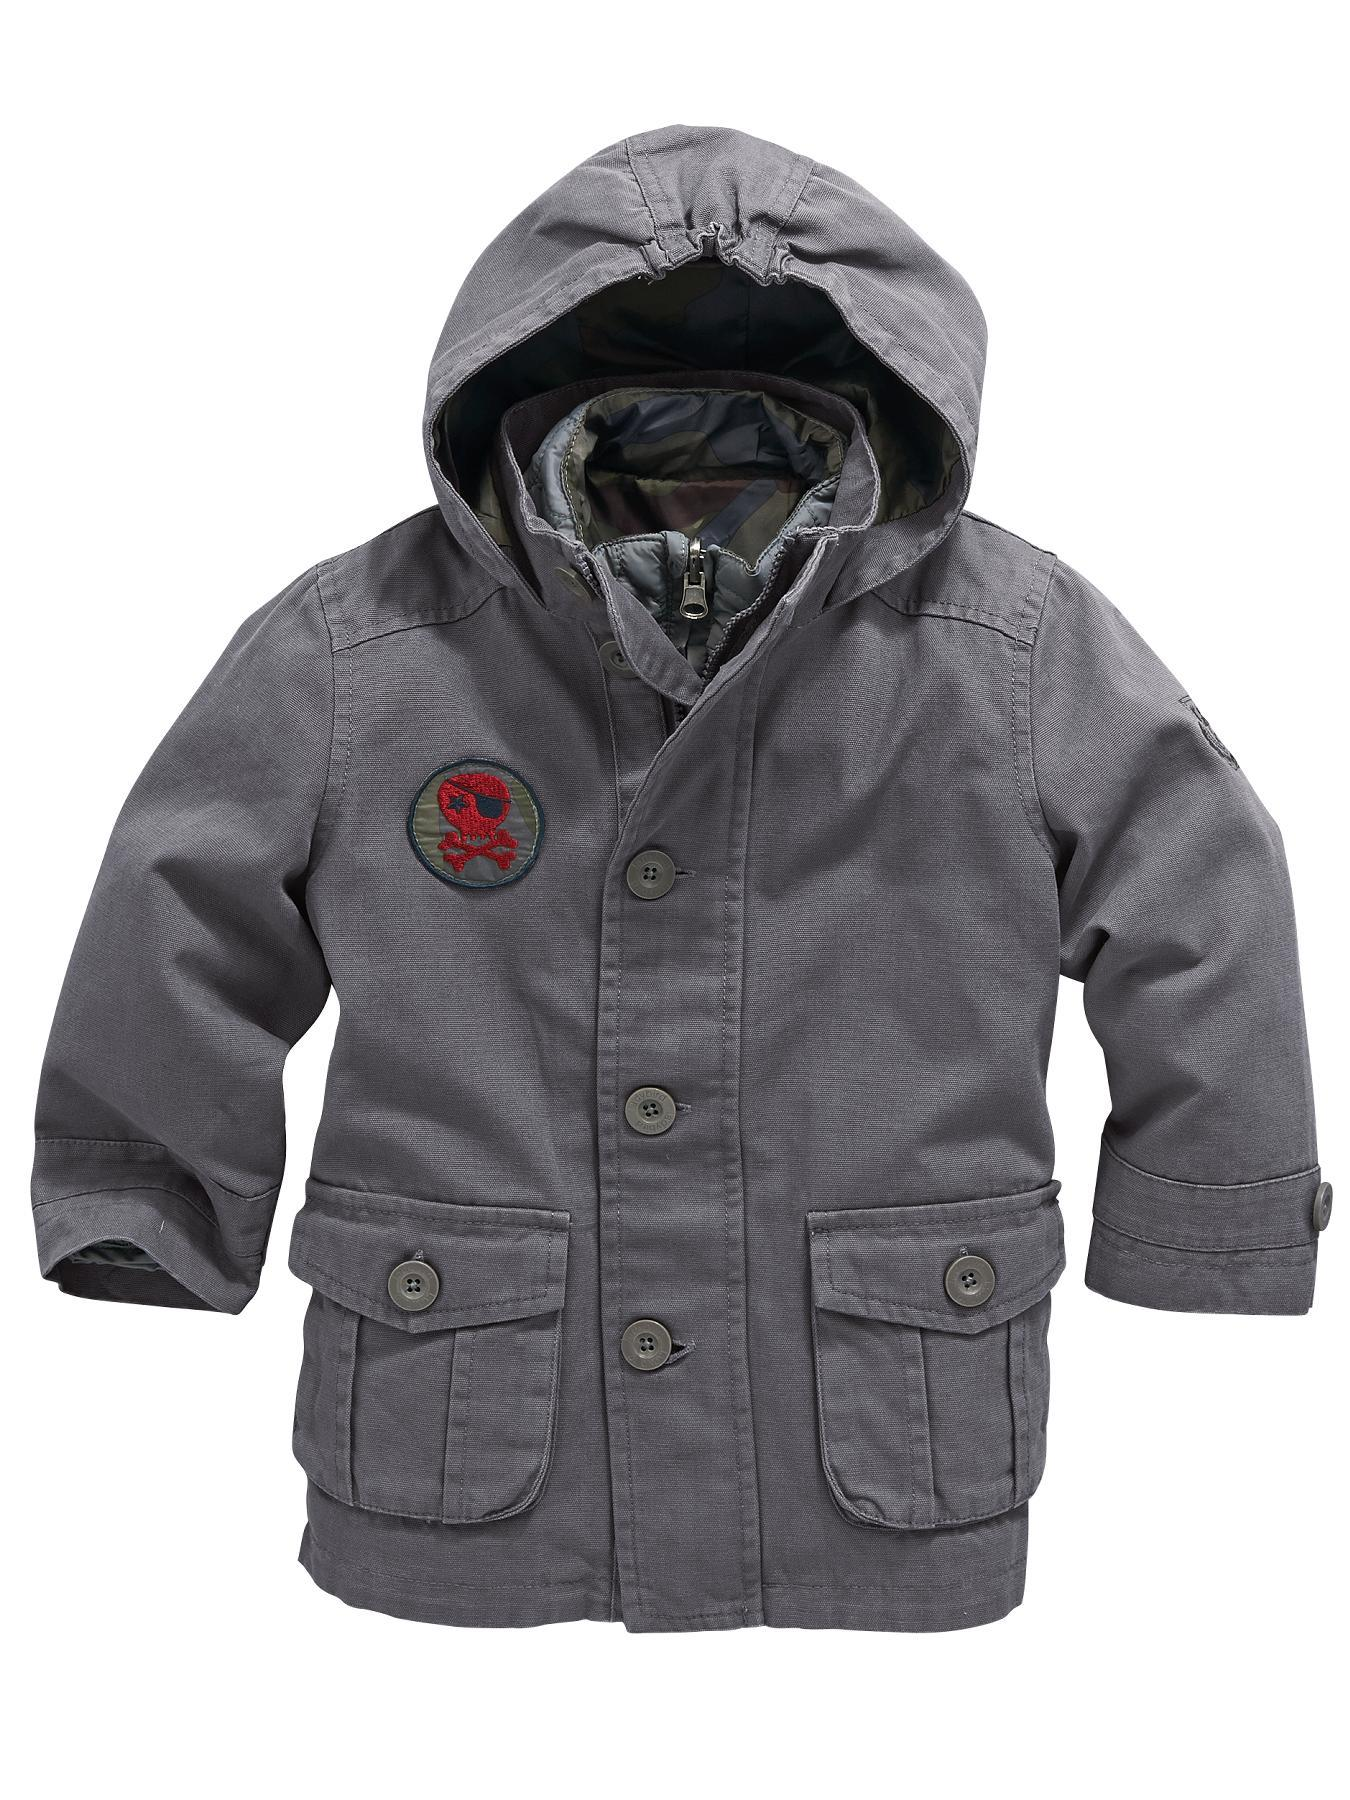 Boys 3-in-1 Coat, Grey